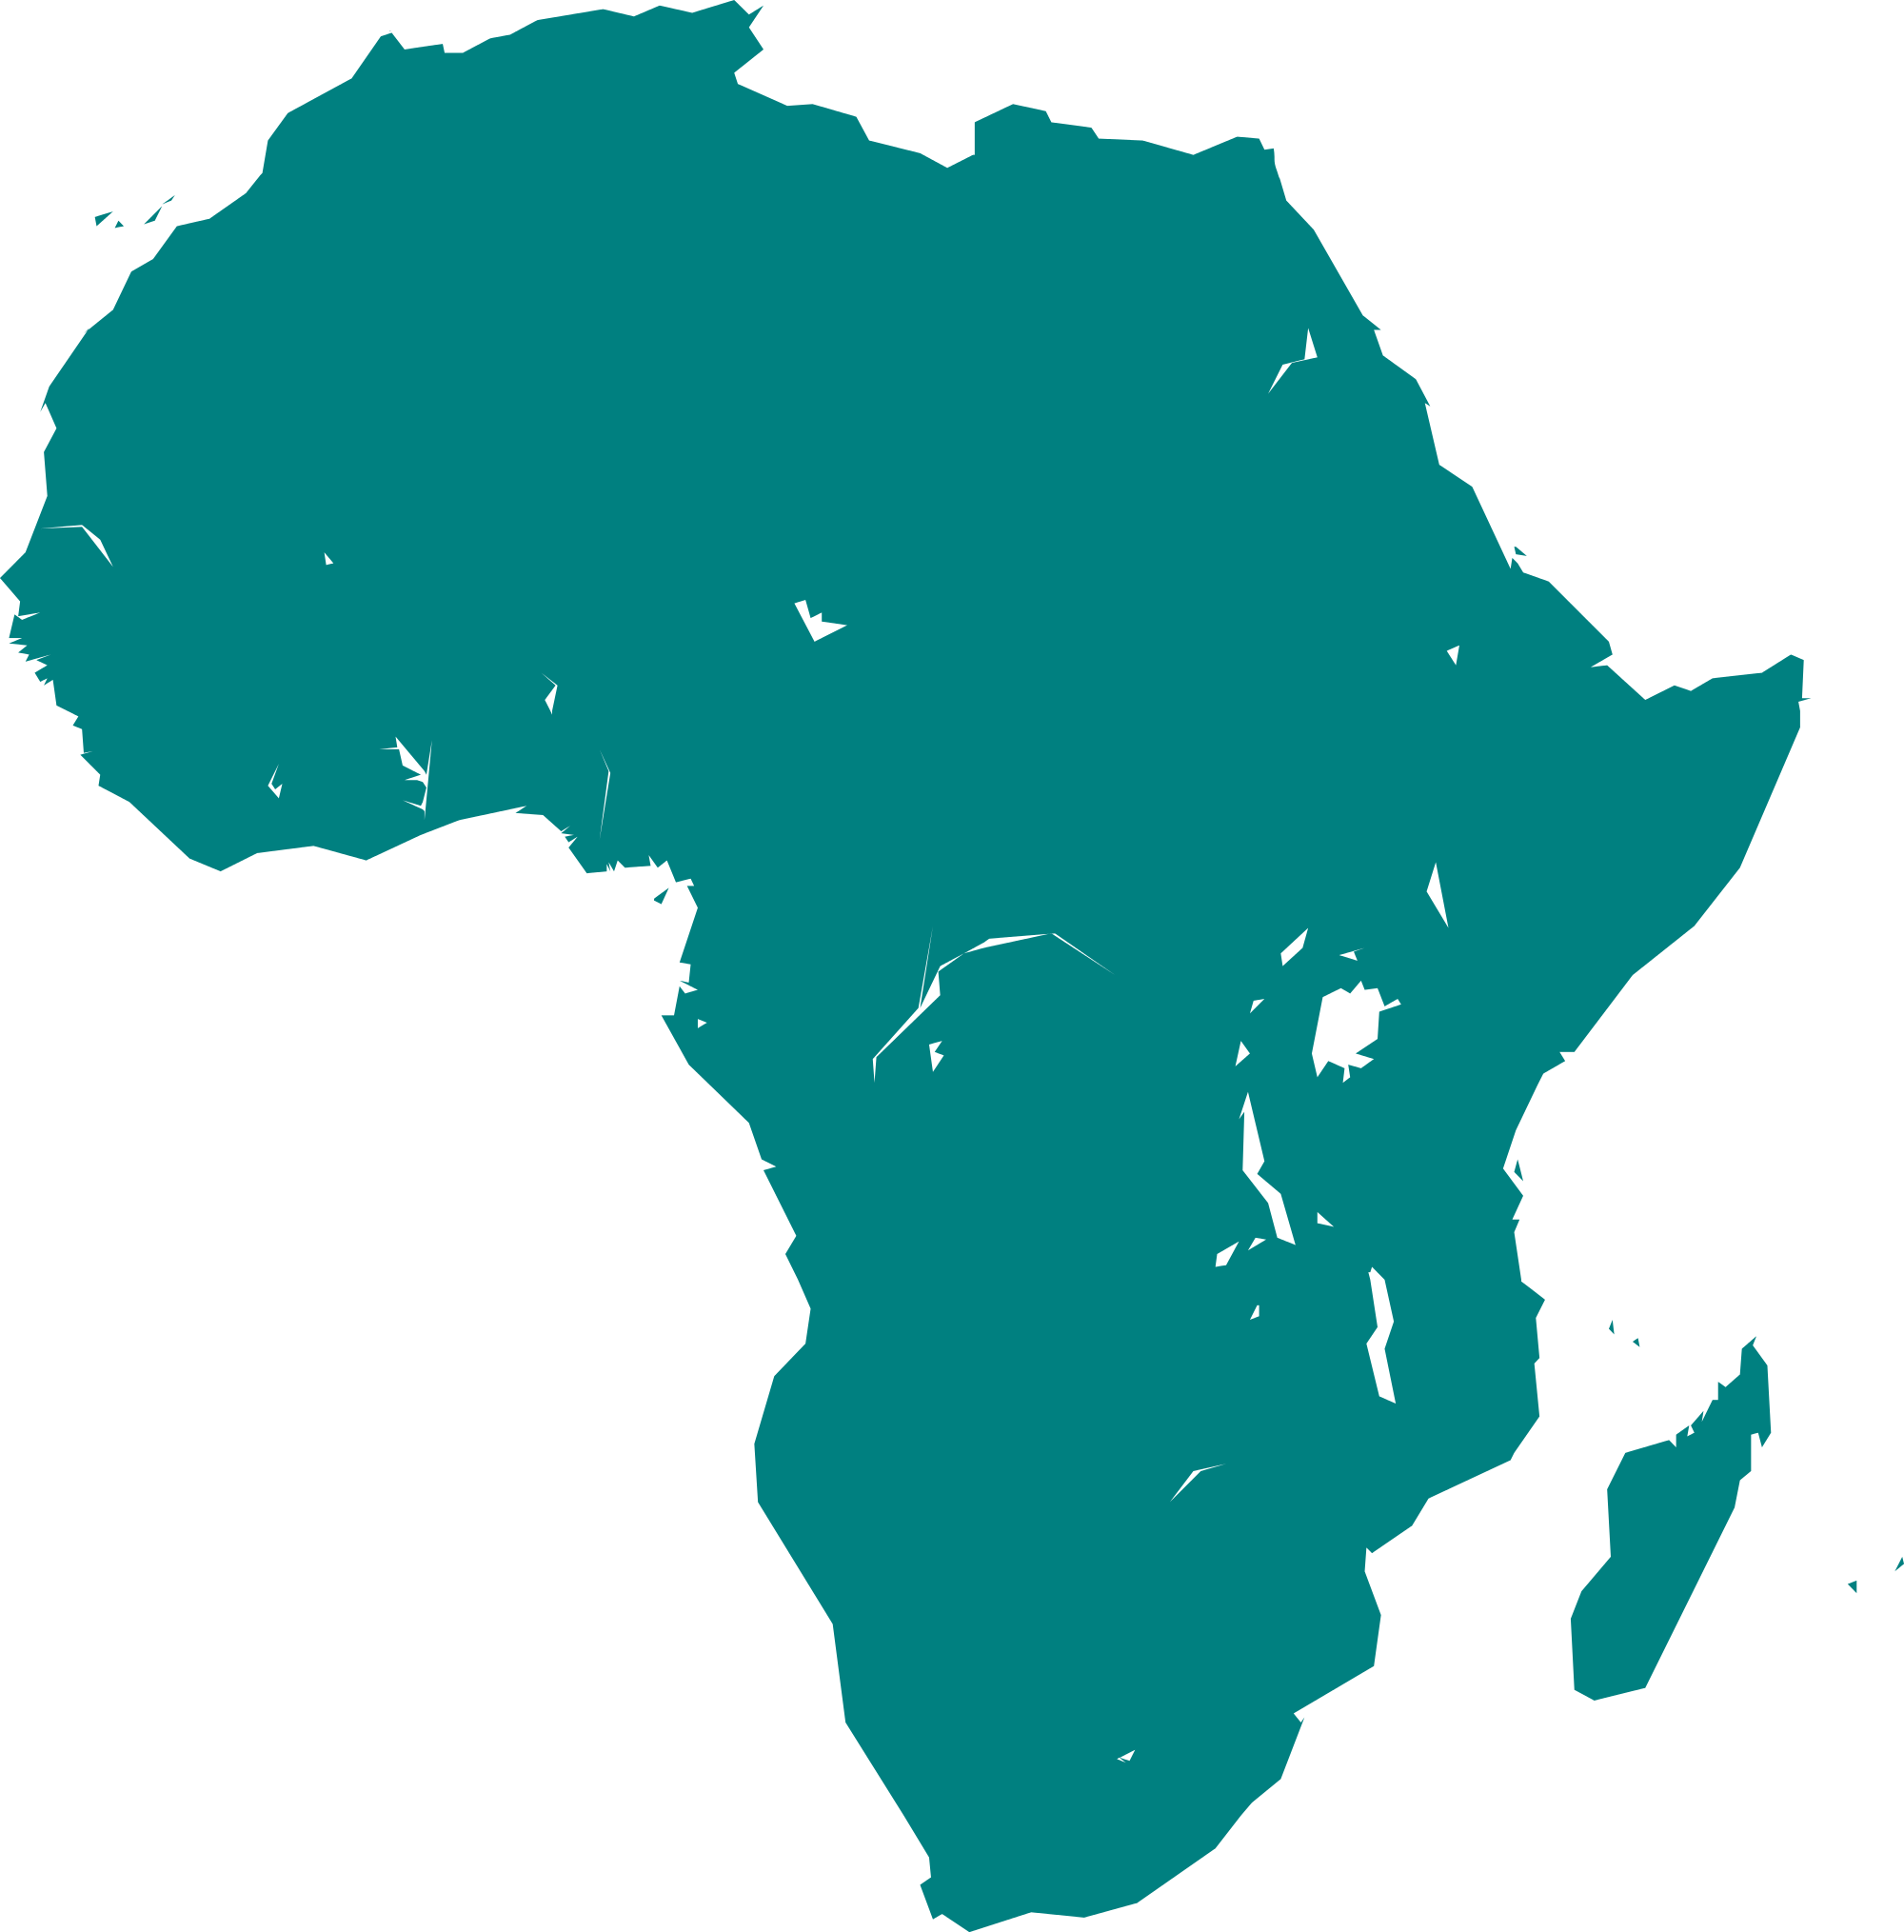 Download Open Pan African Parliament Map Png Image With No Background Pngkey Com